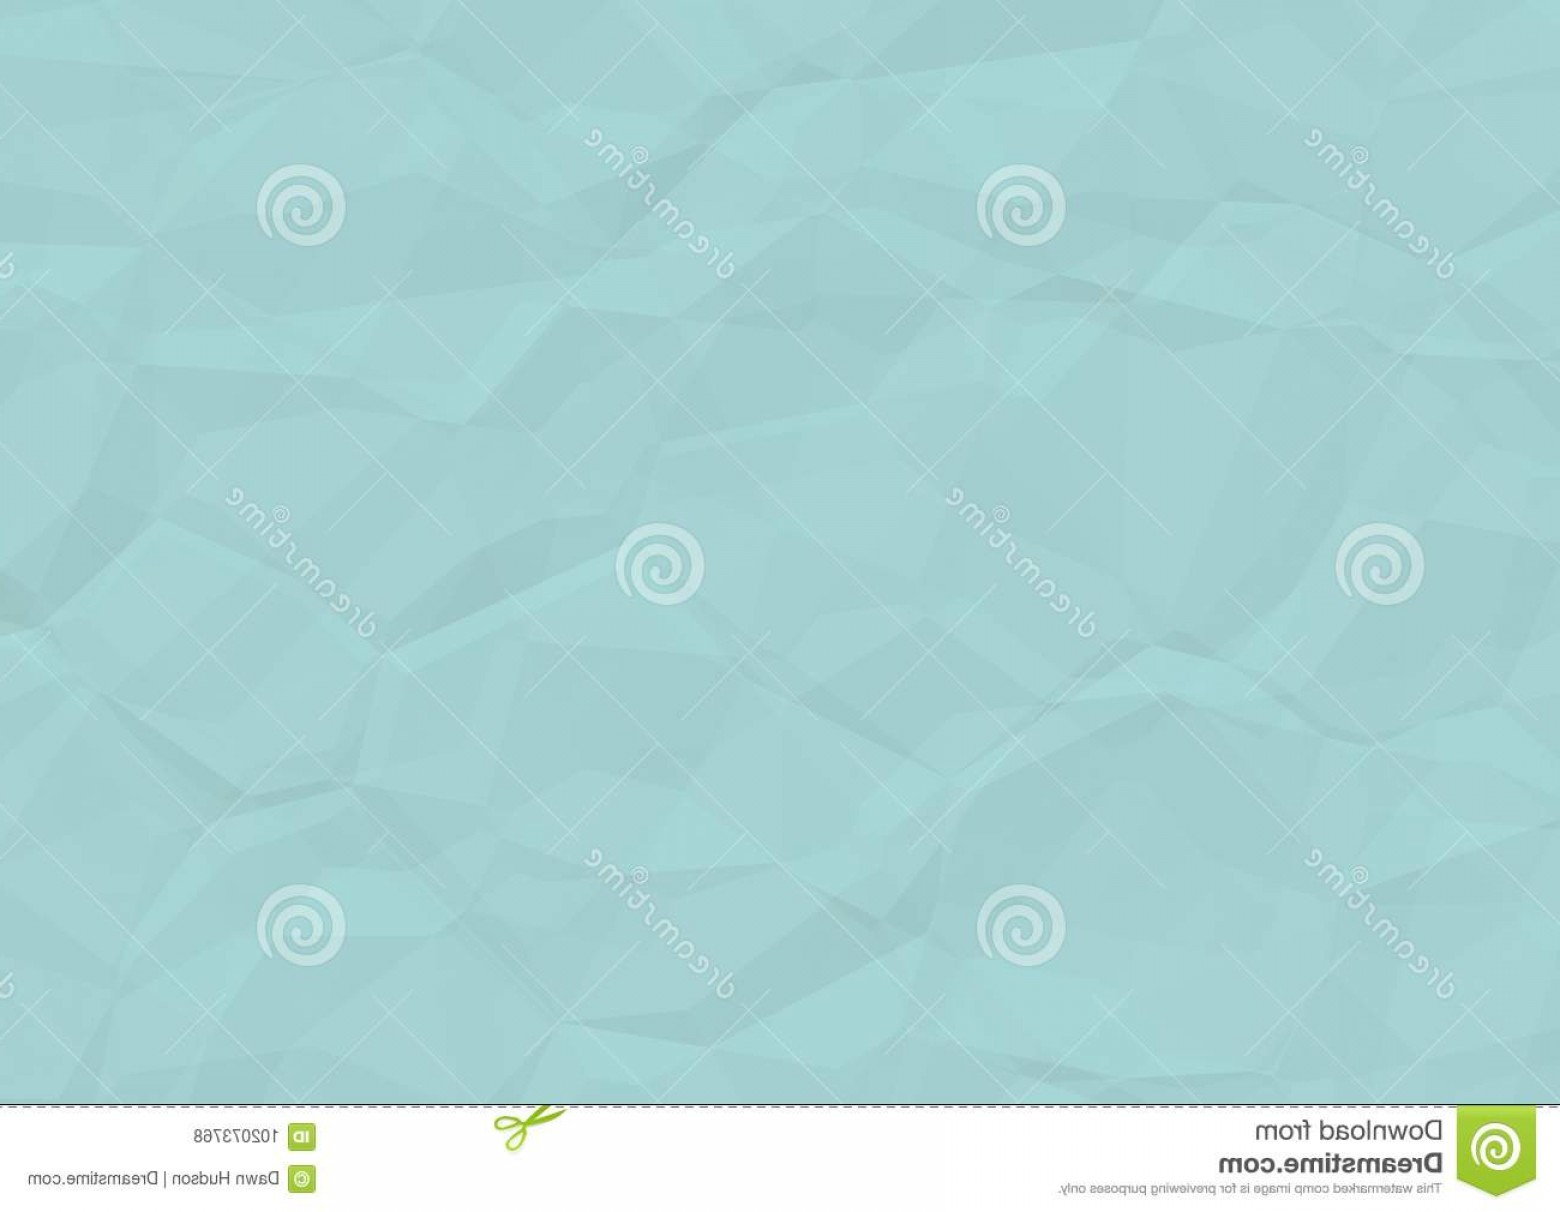 Crinkled Paper Vector: Creased Blue Paper Texture Crinkled Background Image